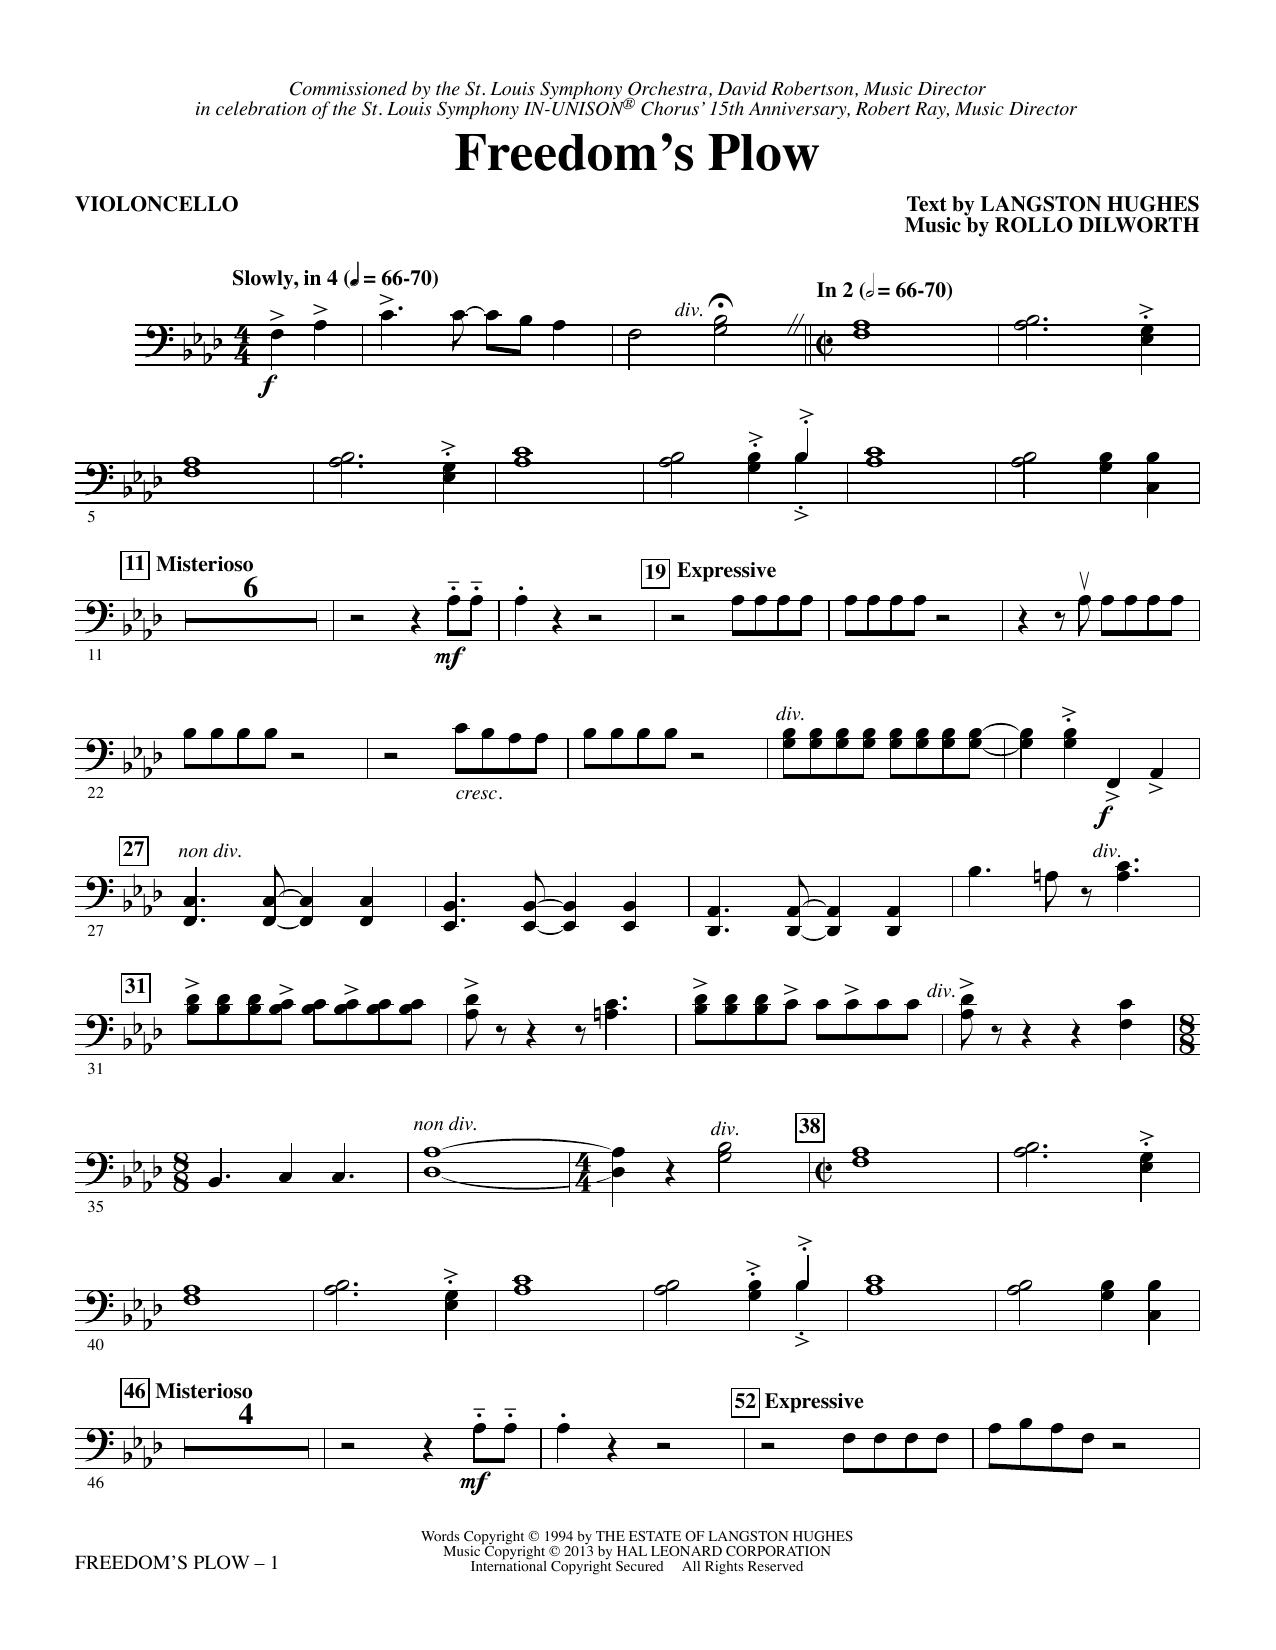 Freedom's Plow - Violoncello Sheet Music